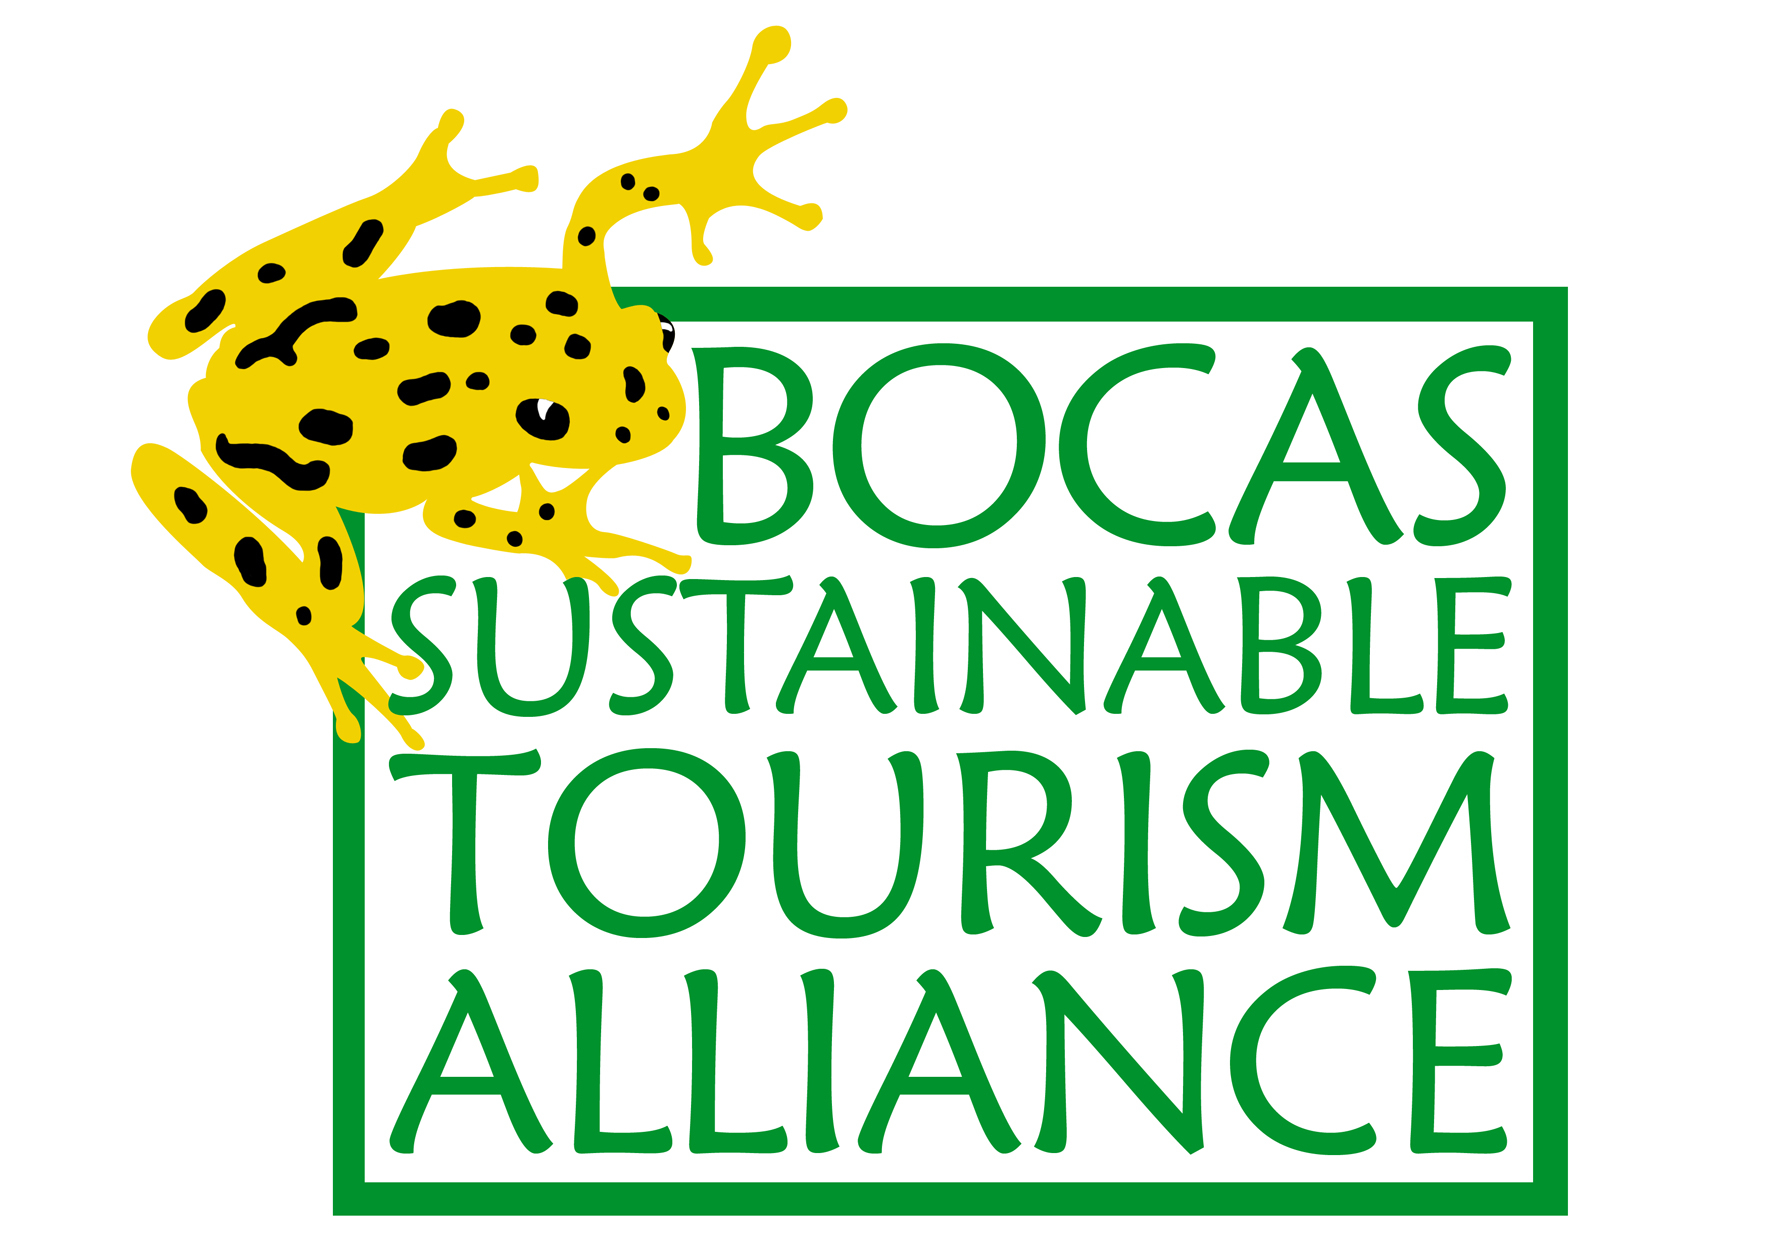 bocas-sustainable-tourism-alliance, Central America, Panama, Bocas Del Toro, DMO, sustainable, tourism, responsible travel, culture, environment, visitor information, bocas town, BSTA